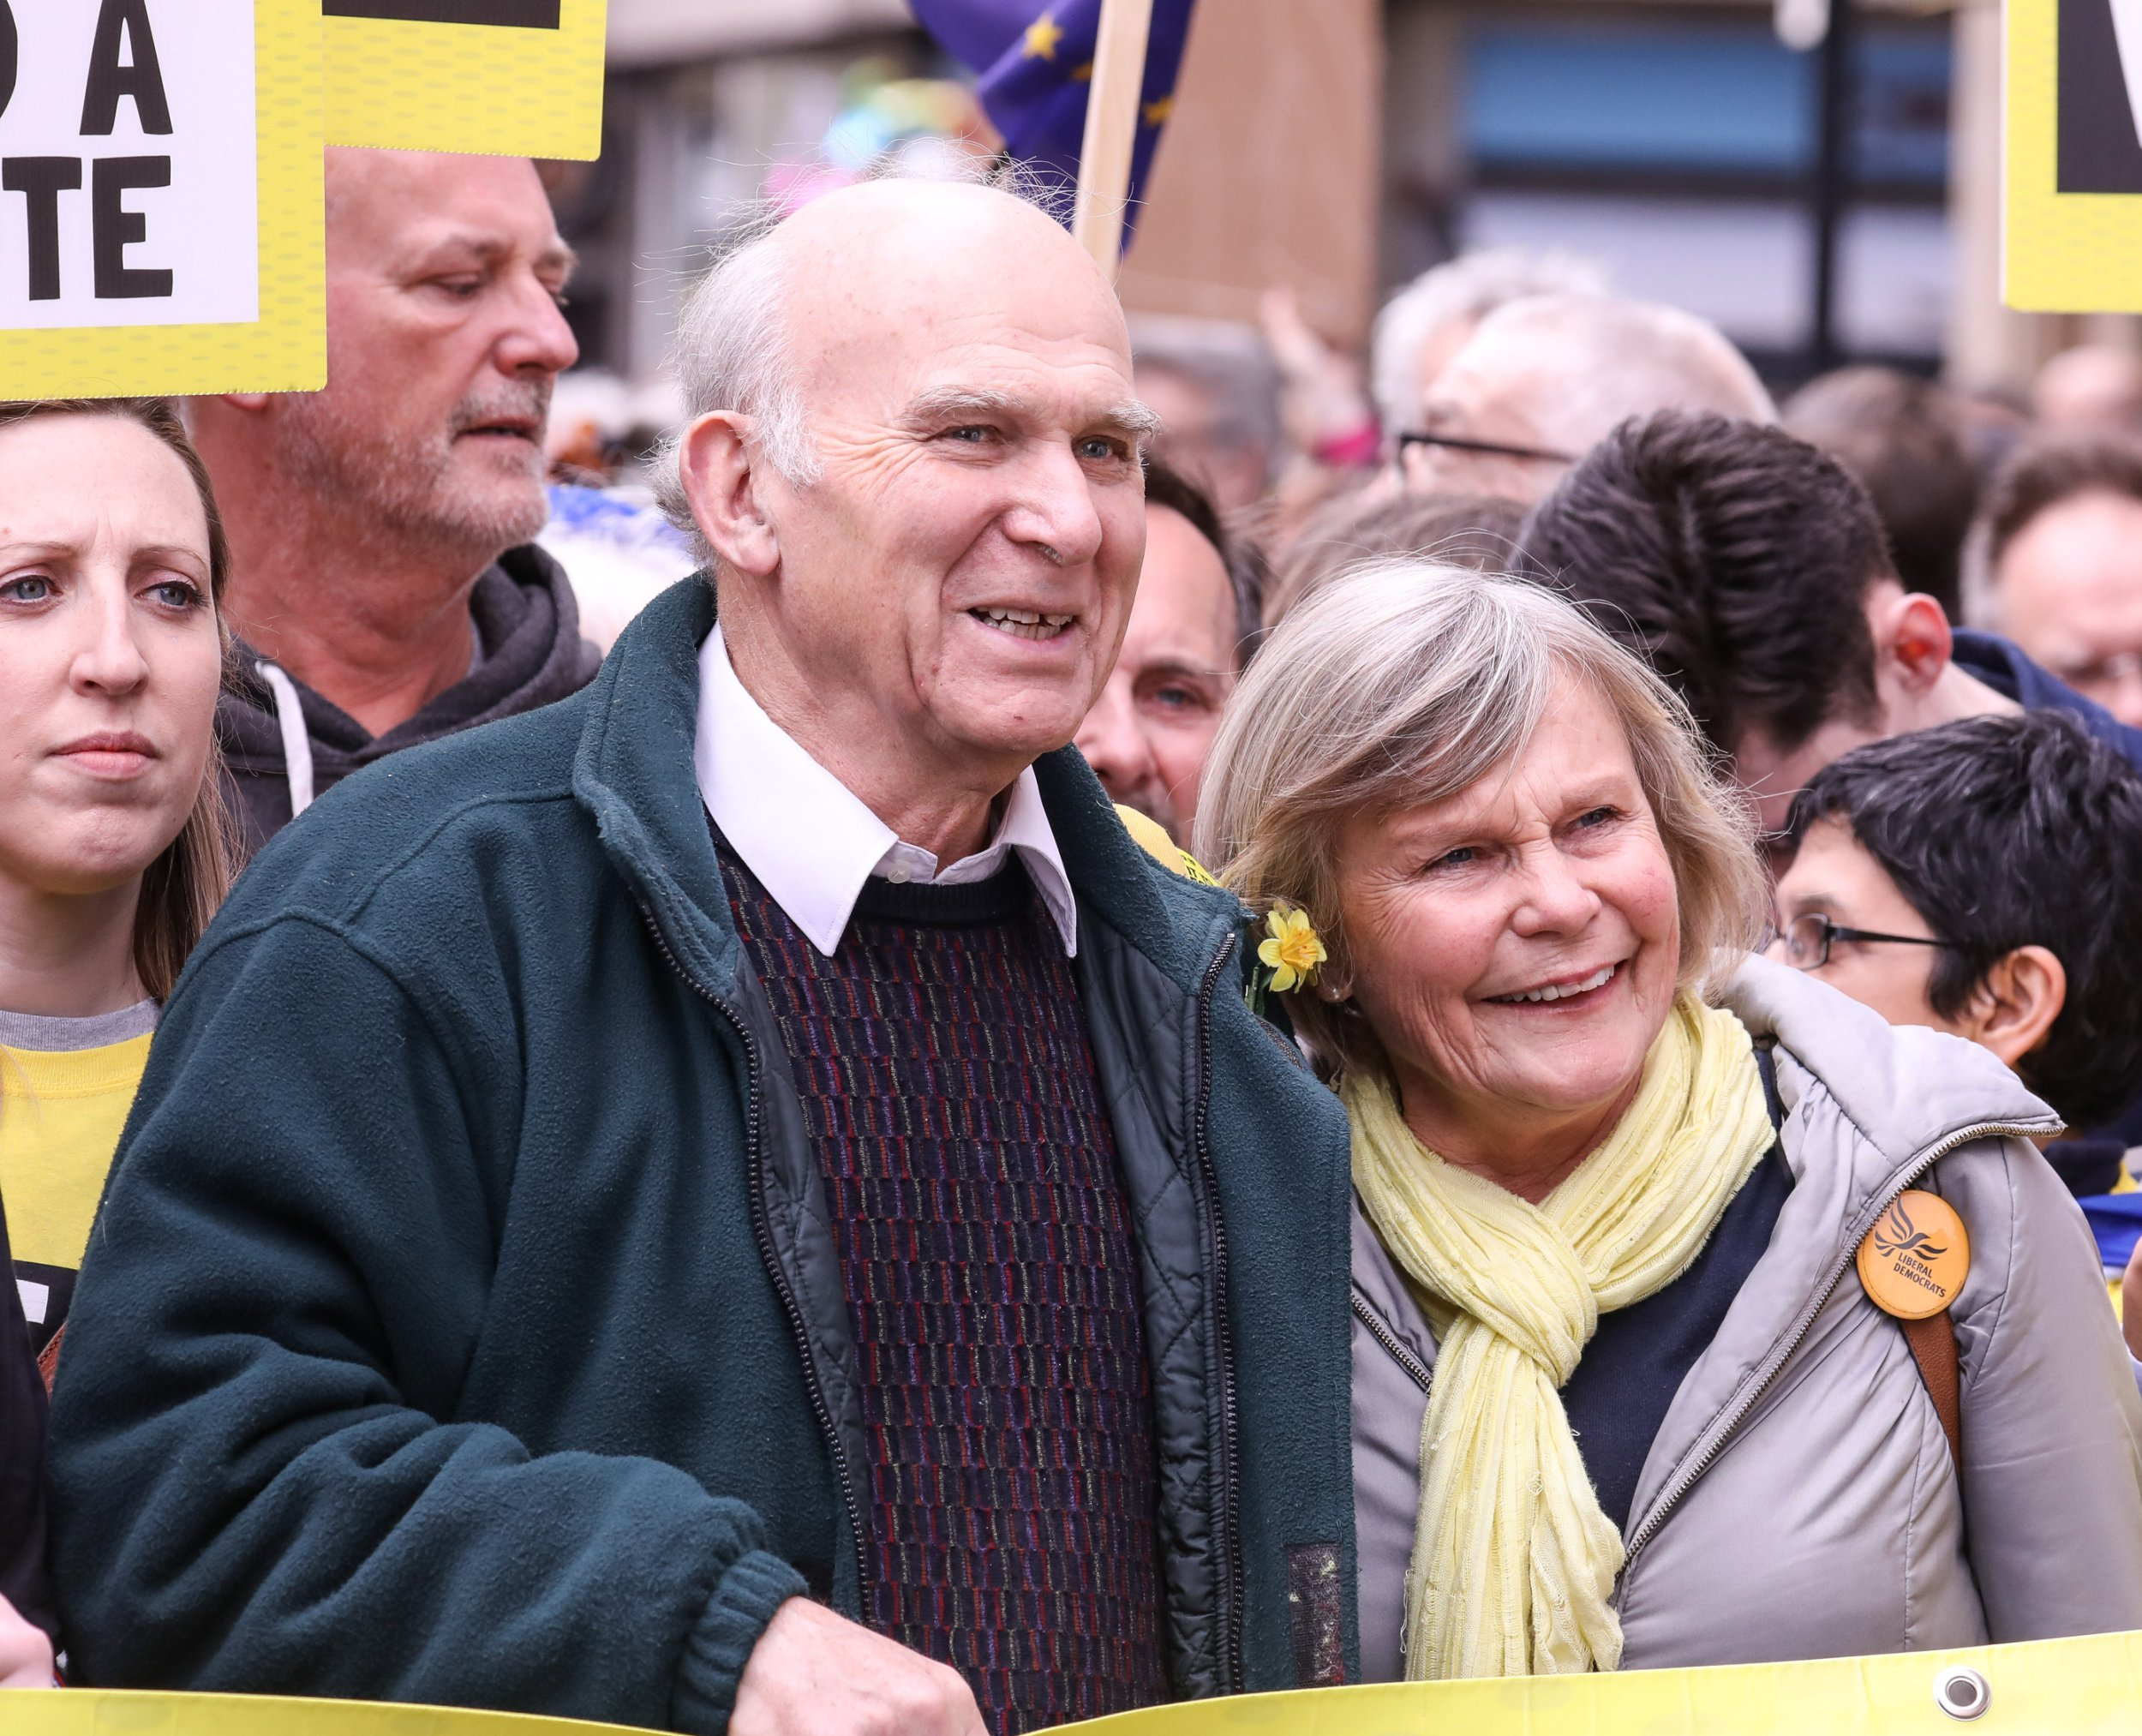 Vince Cable on a People's Vote march